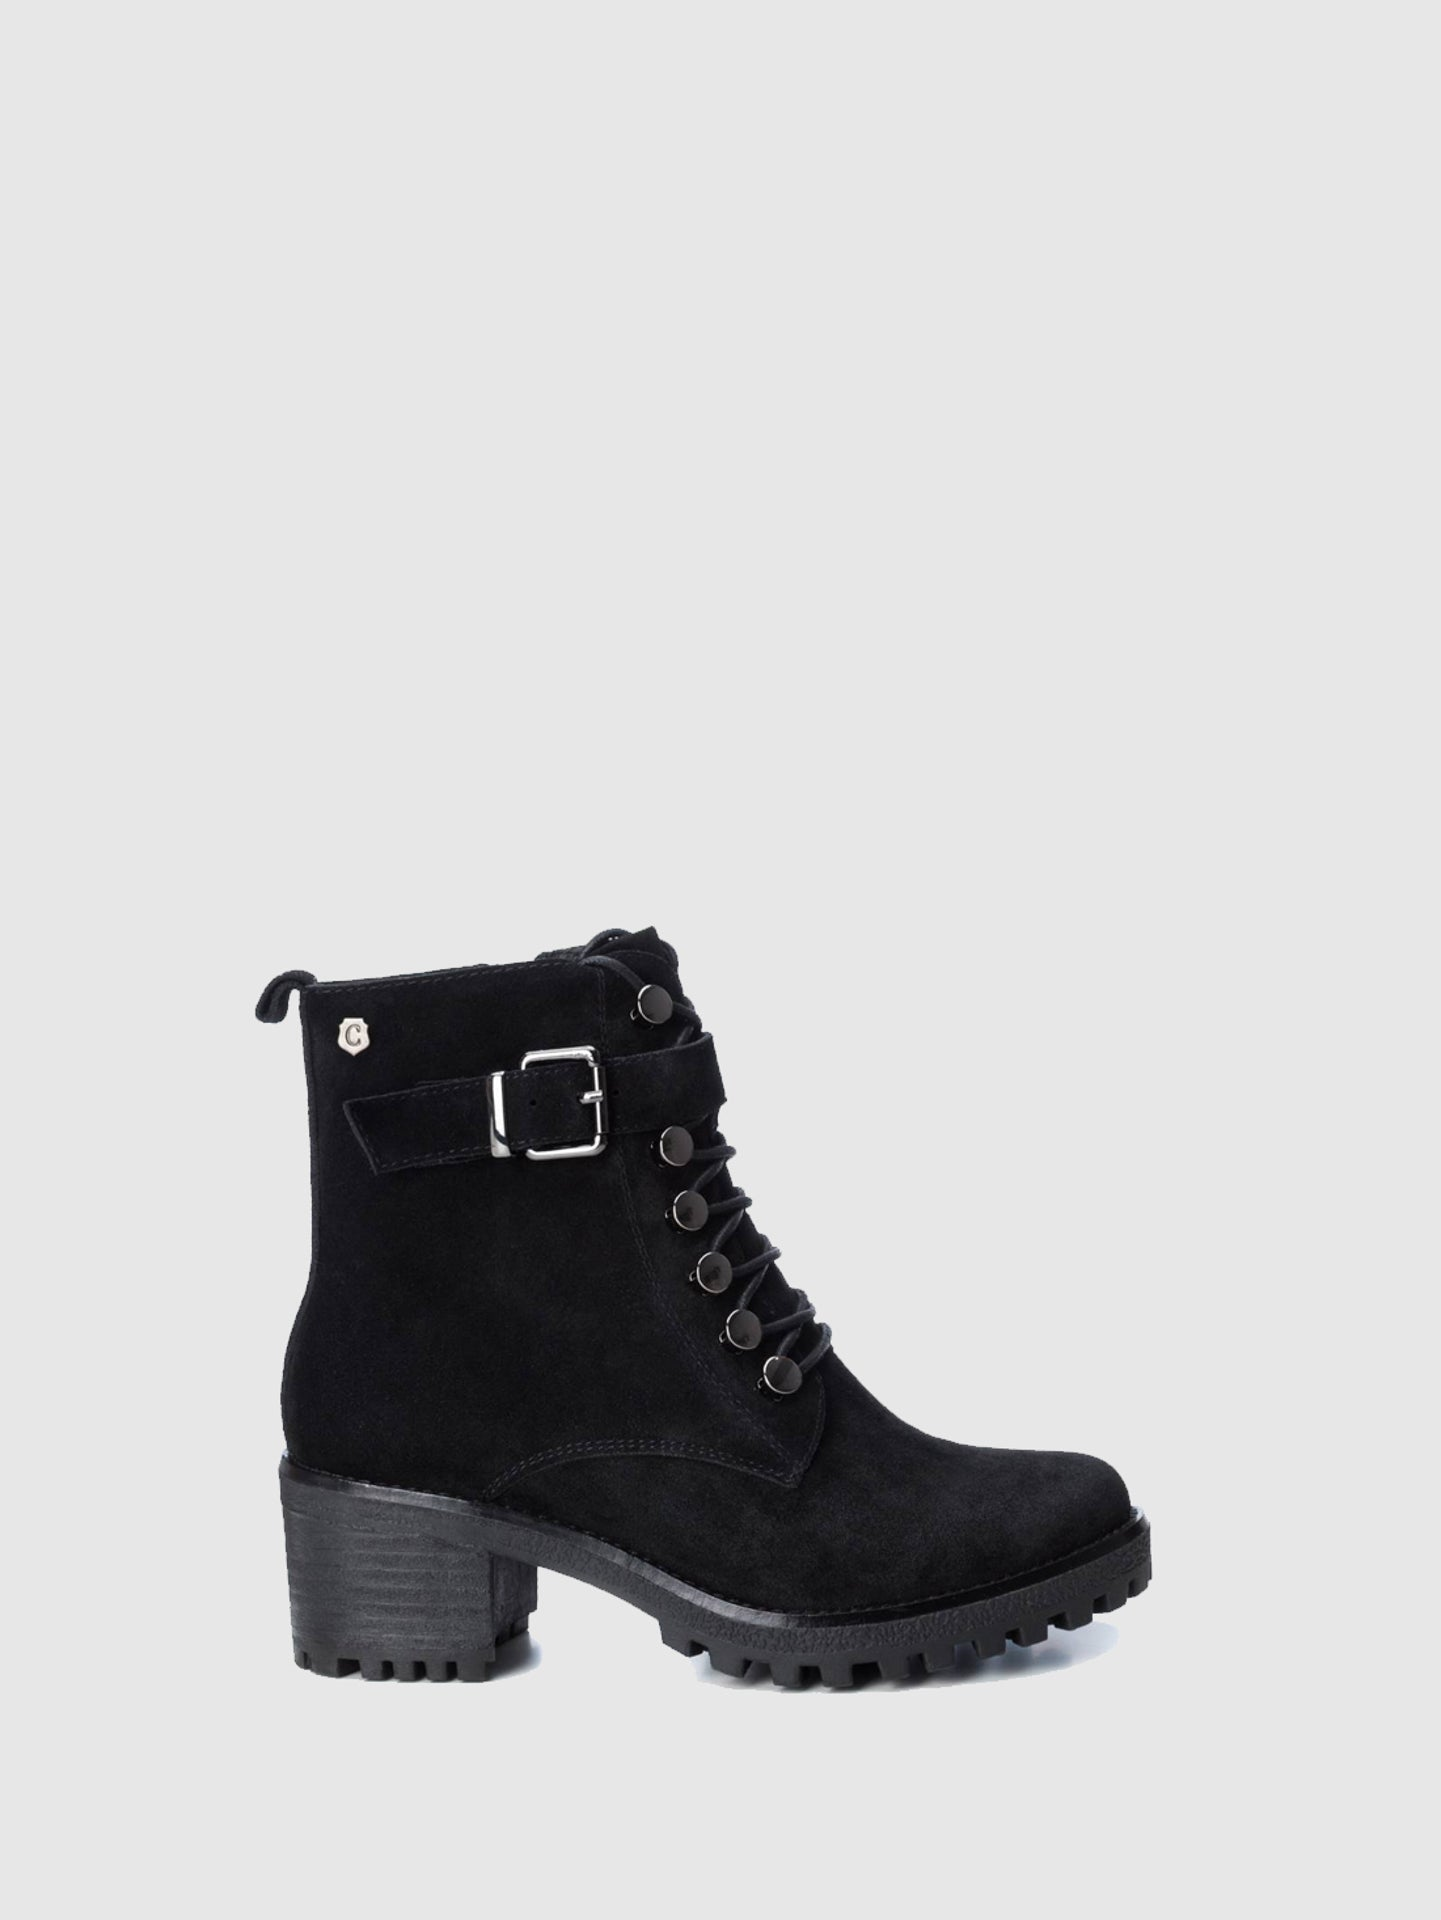 Carmela Black Zip Up Ankle Boots